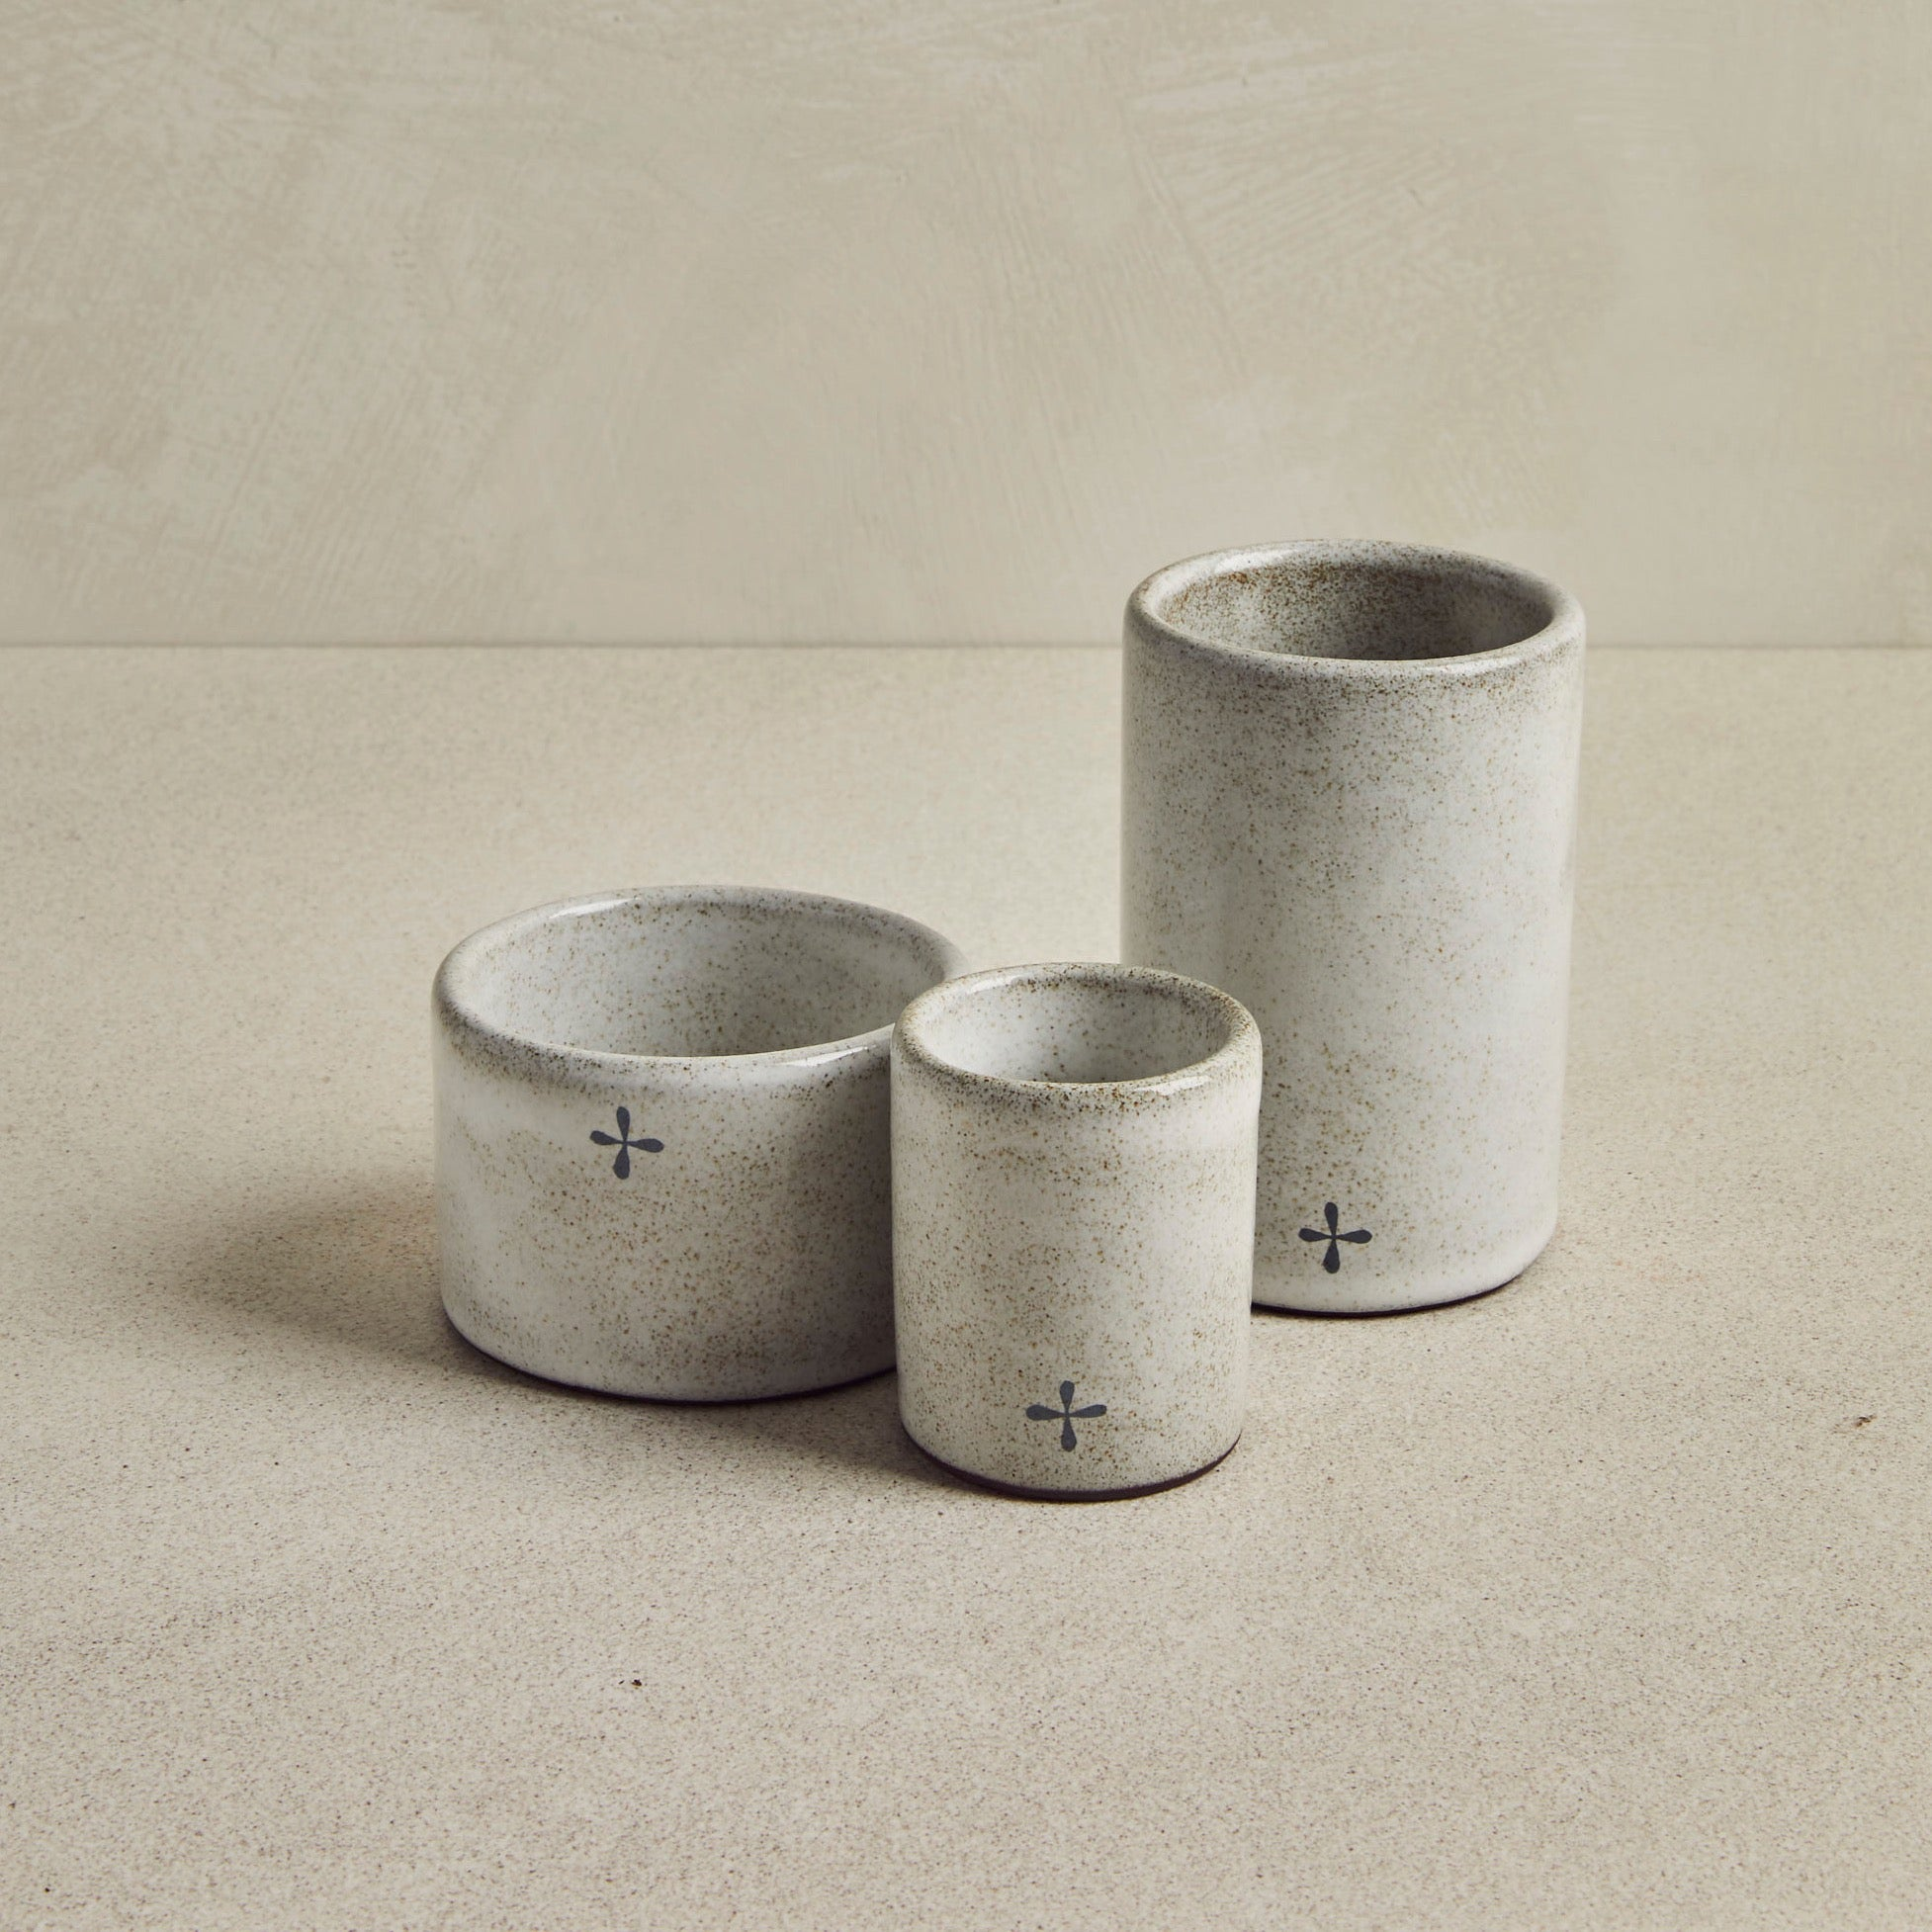 Trio of empty grey ceramic cups, on a beige background